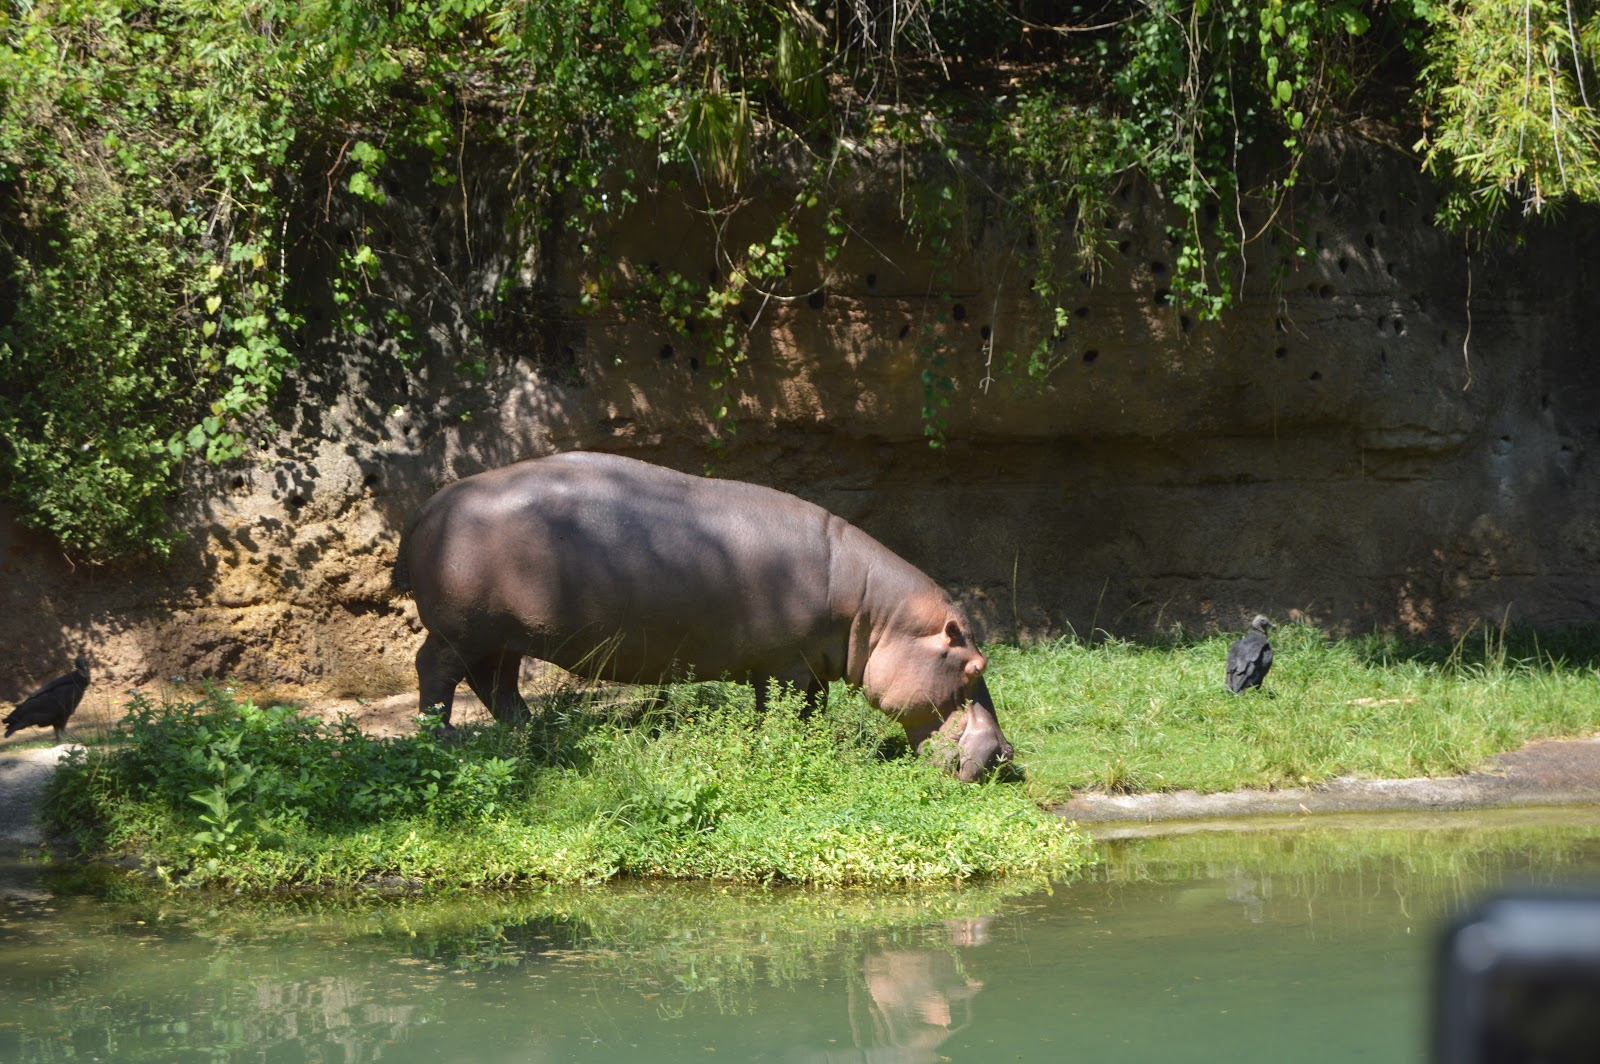 A Hippo drinking fro a stream